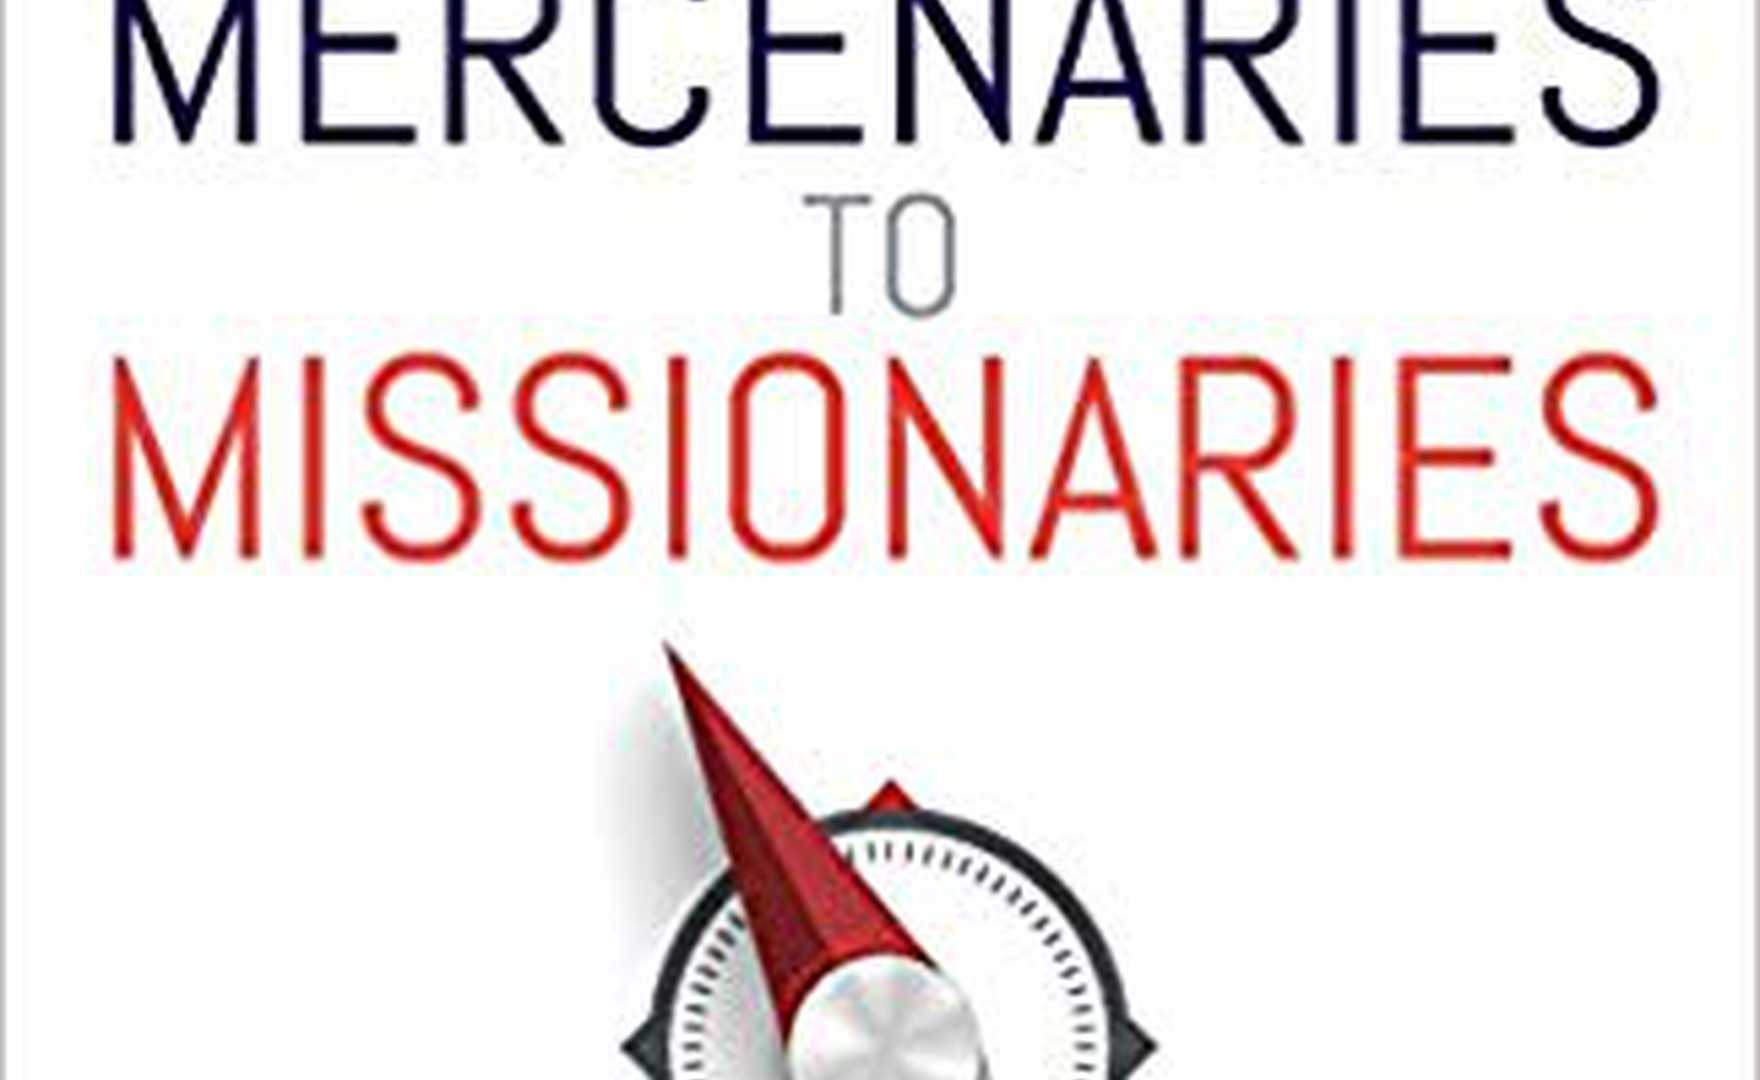 Book review - Mercenaries to Missionaries by Martin Murphy